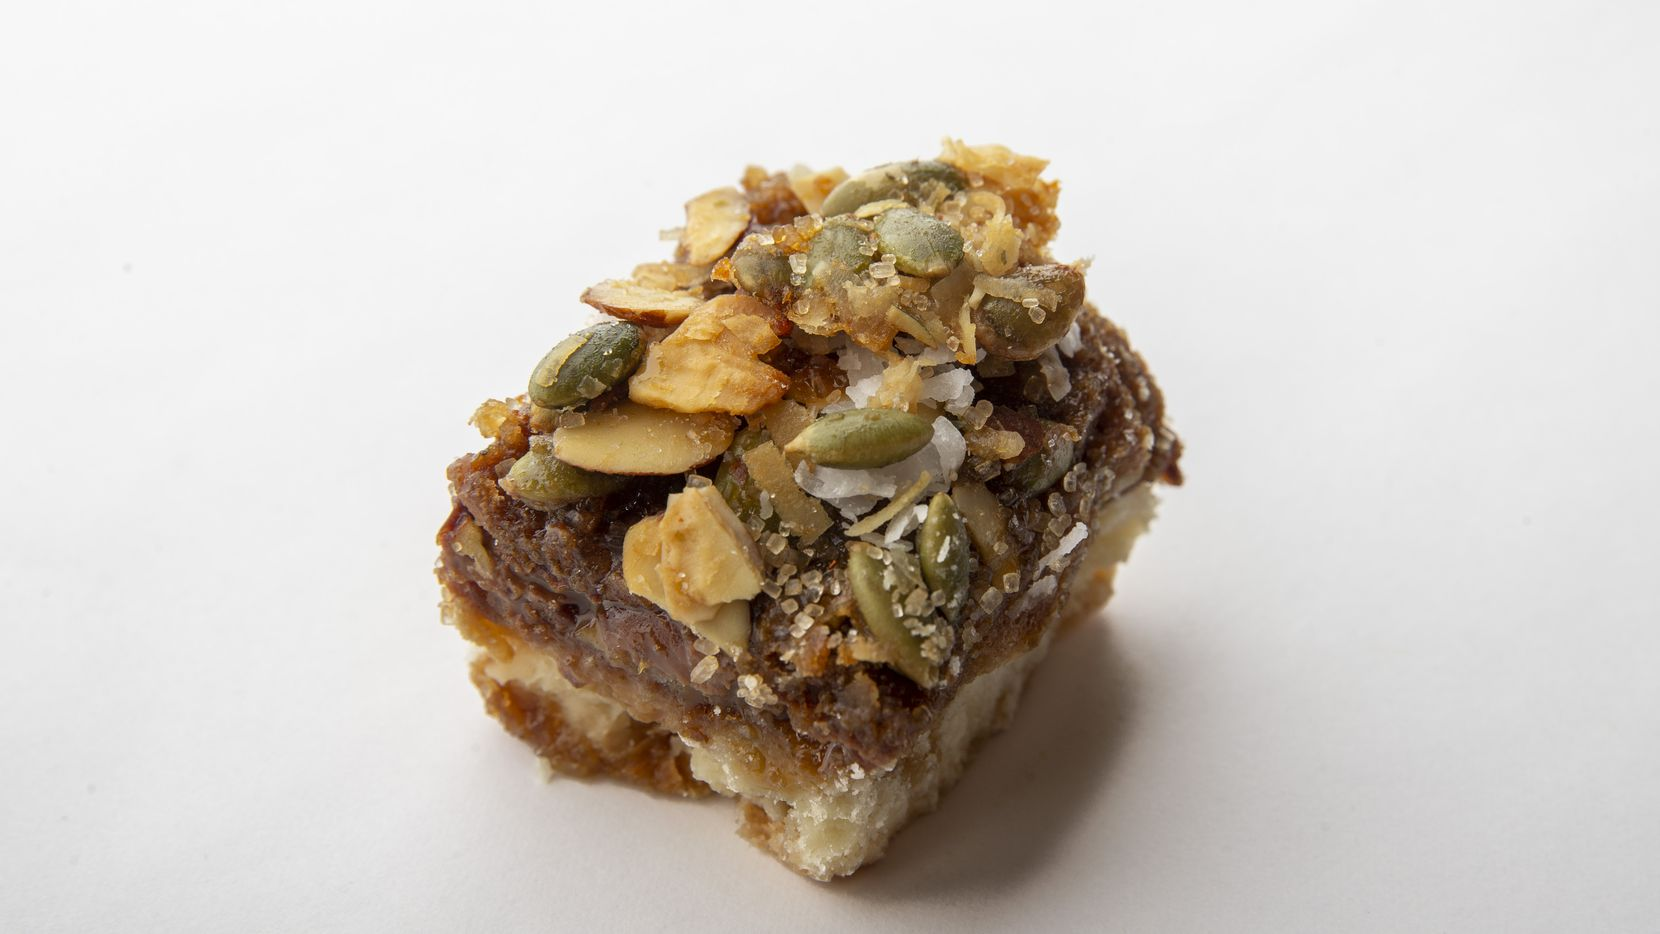 The Buena Onda spicy almond-pepita and pilloncillo cluster bars made by Rex Poland won the bar category at the 24th annual Holiday Cookie Contest hosted by The Dallas Morning News.